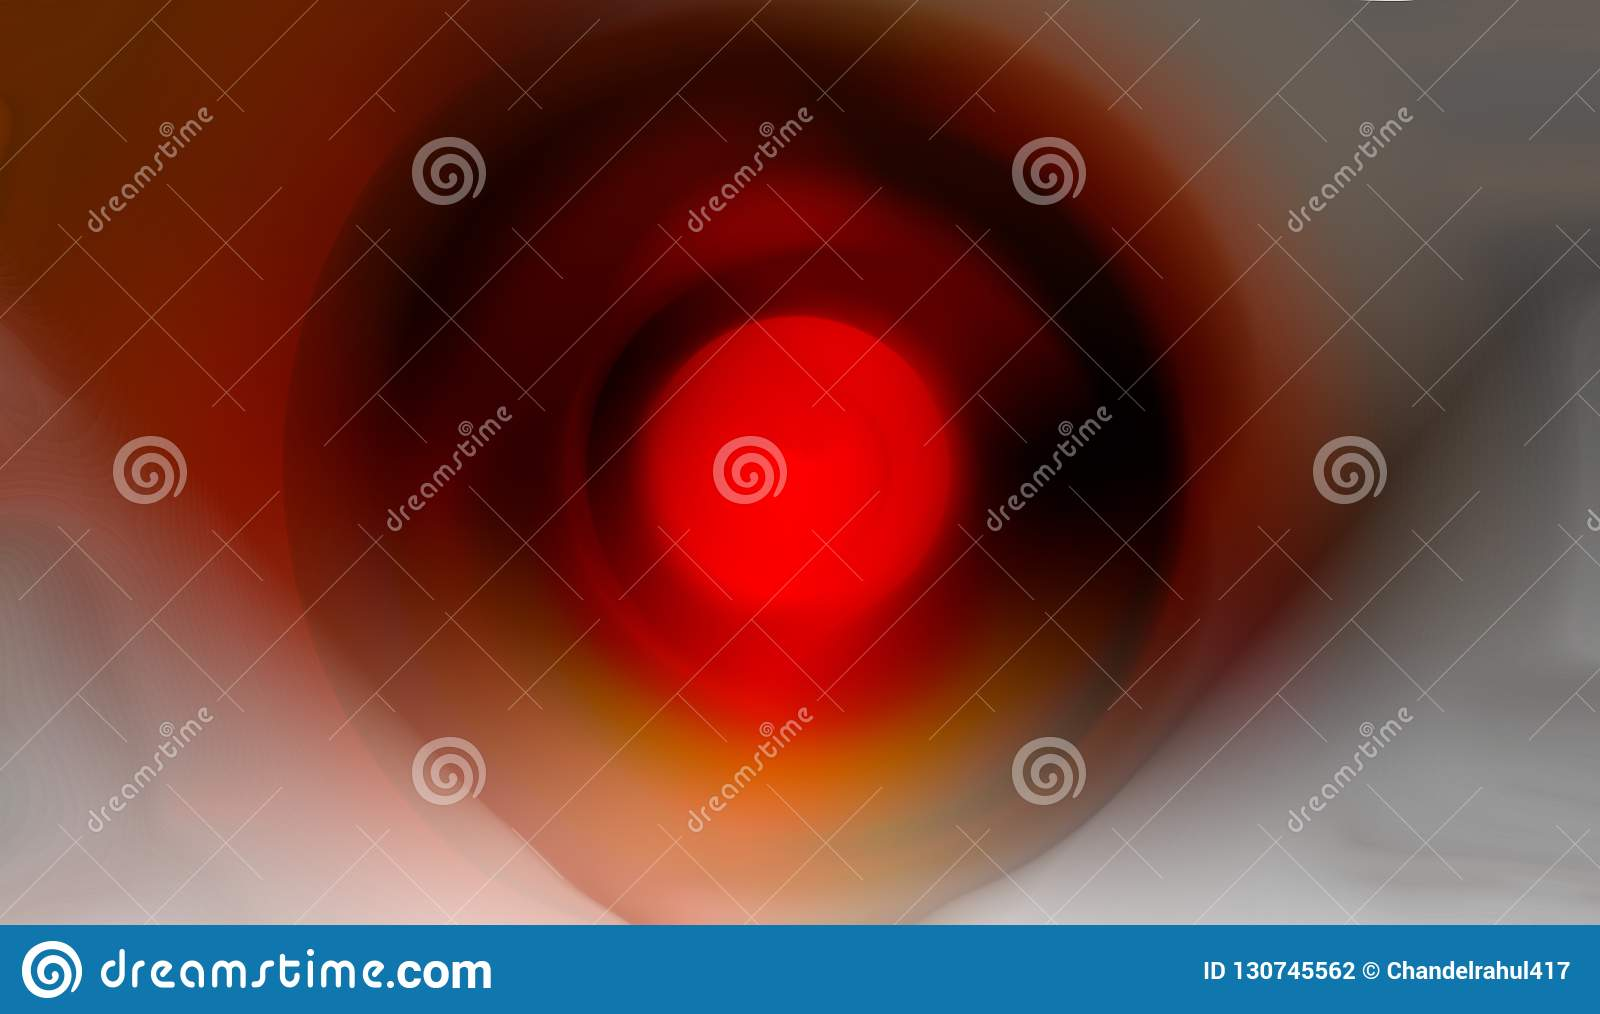 Yellow dark red and wite blurred shaded background wallpaper. vivid color vector illustration.